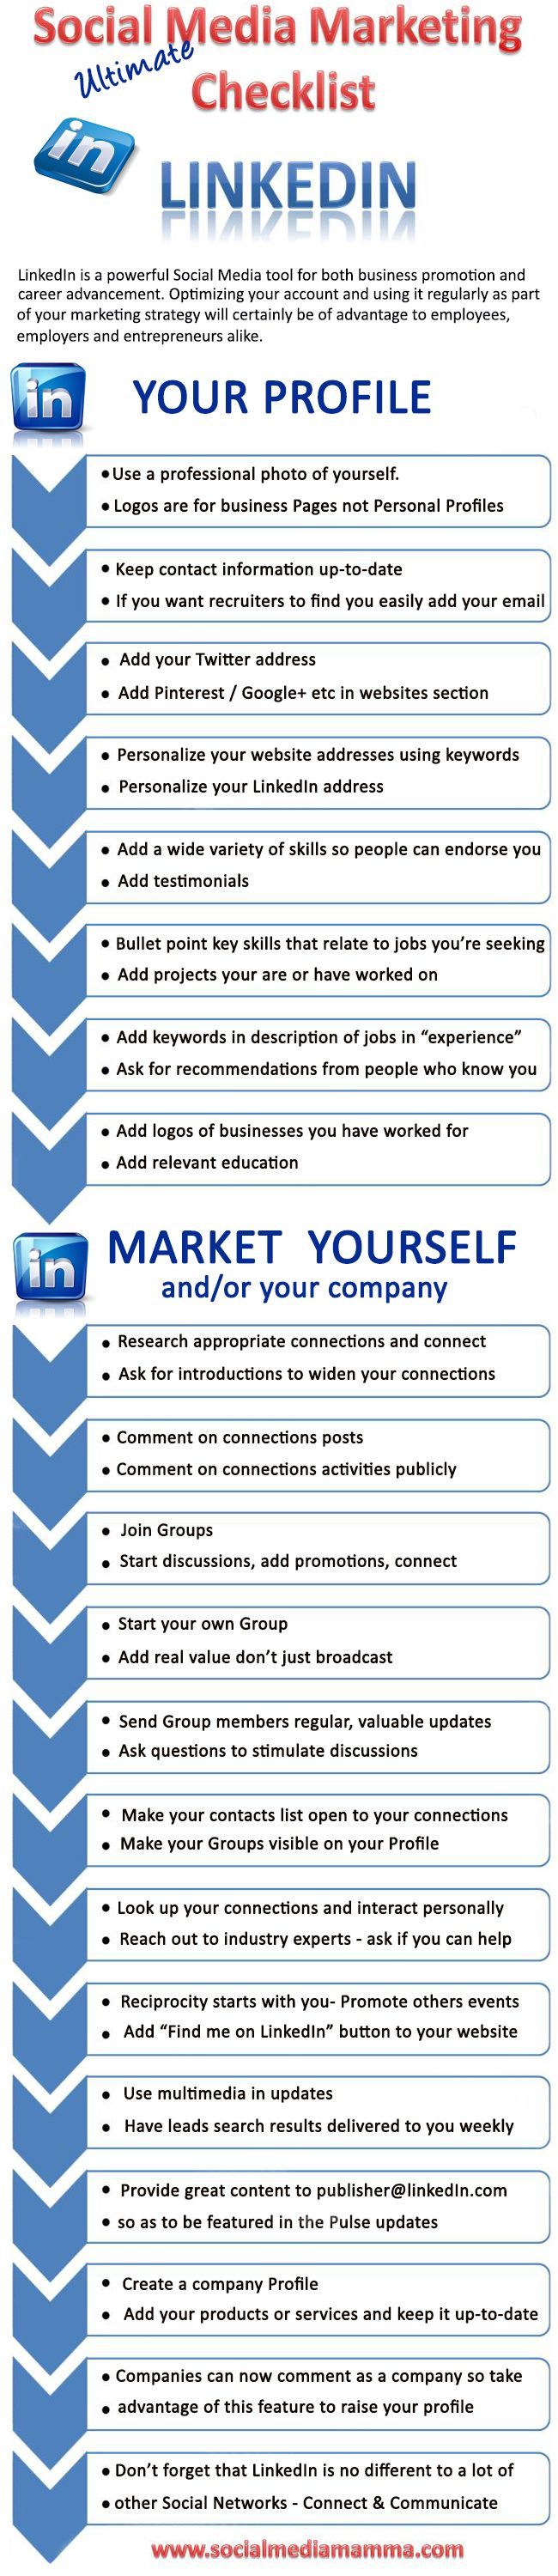 Linkedin checklist for your career and to grow your business  #linkedin www.socialmediamamma.com LinkedIn infographic